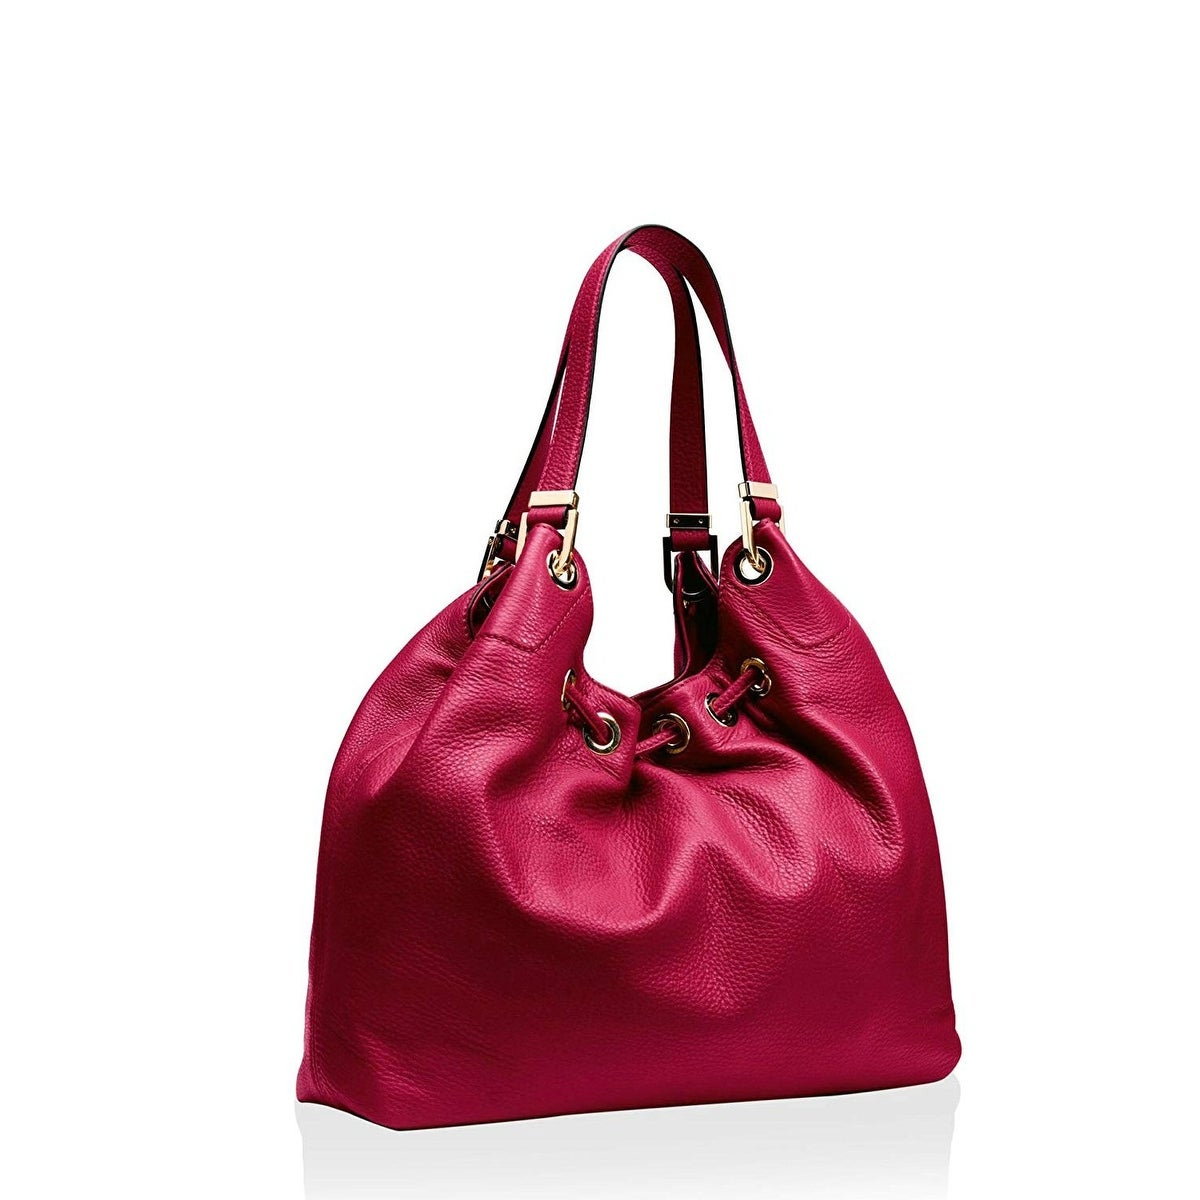 458d3f3915b2 Shop MICHAEL Michael Kors Camden Large Drawstring Shoulder Tote Bag  Cherry/Gold - One Size - Free Shipping Today - Overstock - 27296237